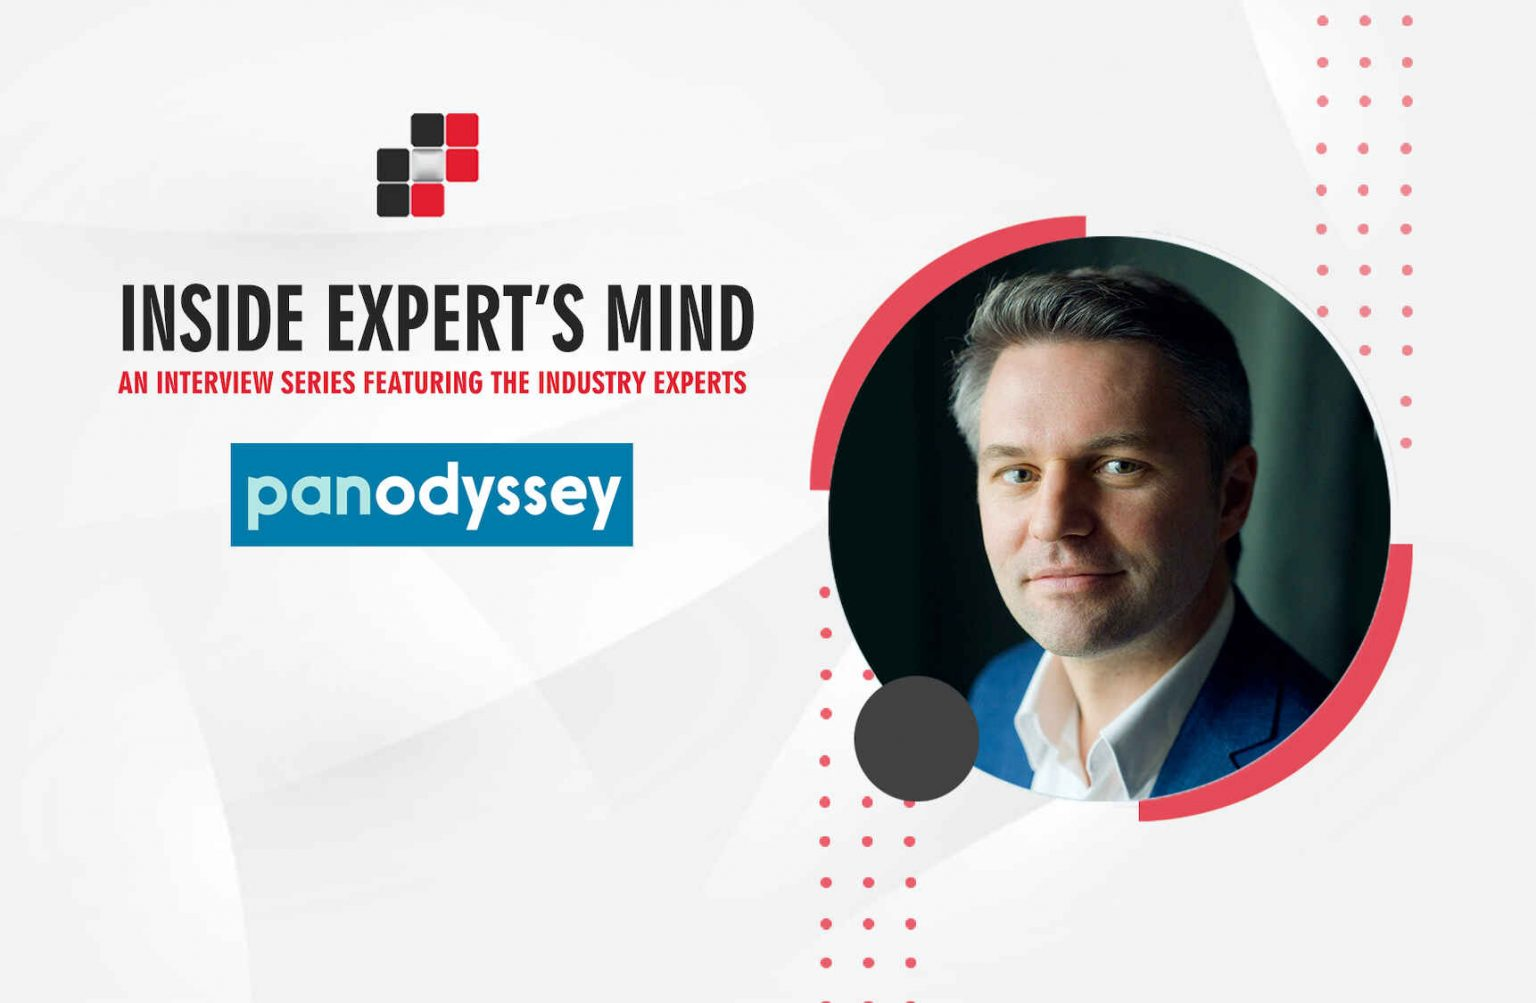 Alexandre Leforestier, CEO at Panodyssey